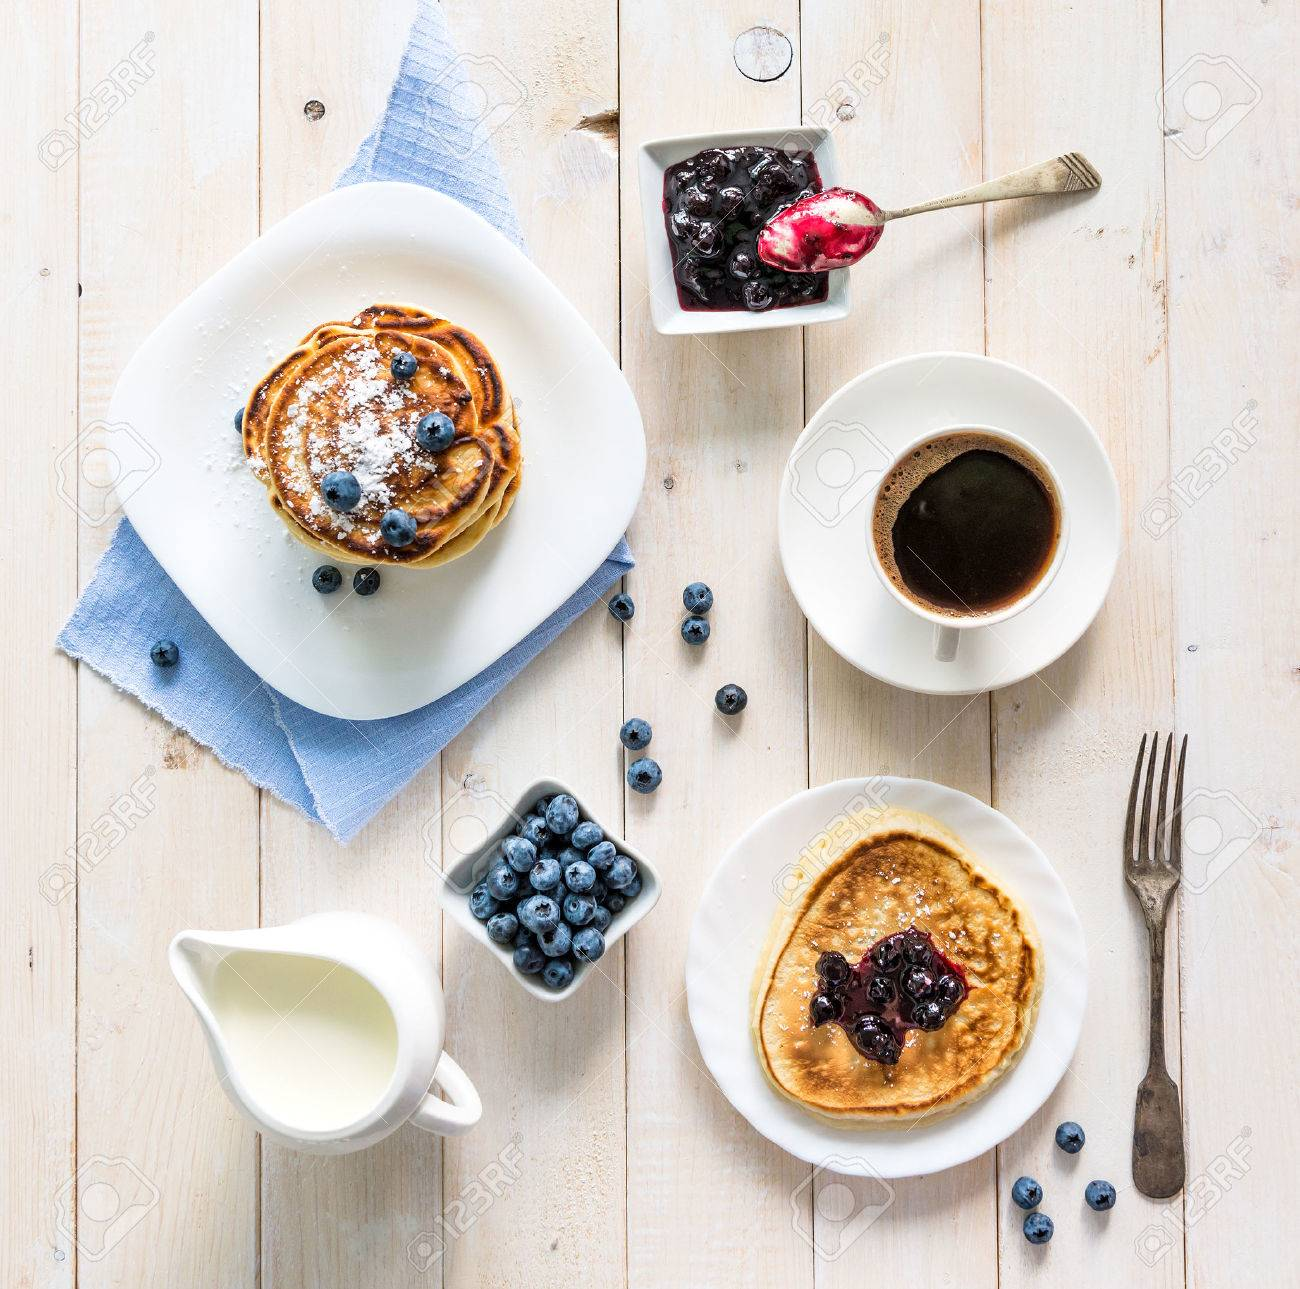 pancakes with blueberry and coffee on wooden background. top view - 47389761